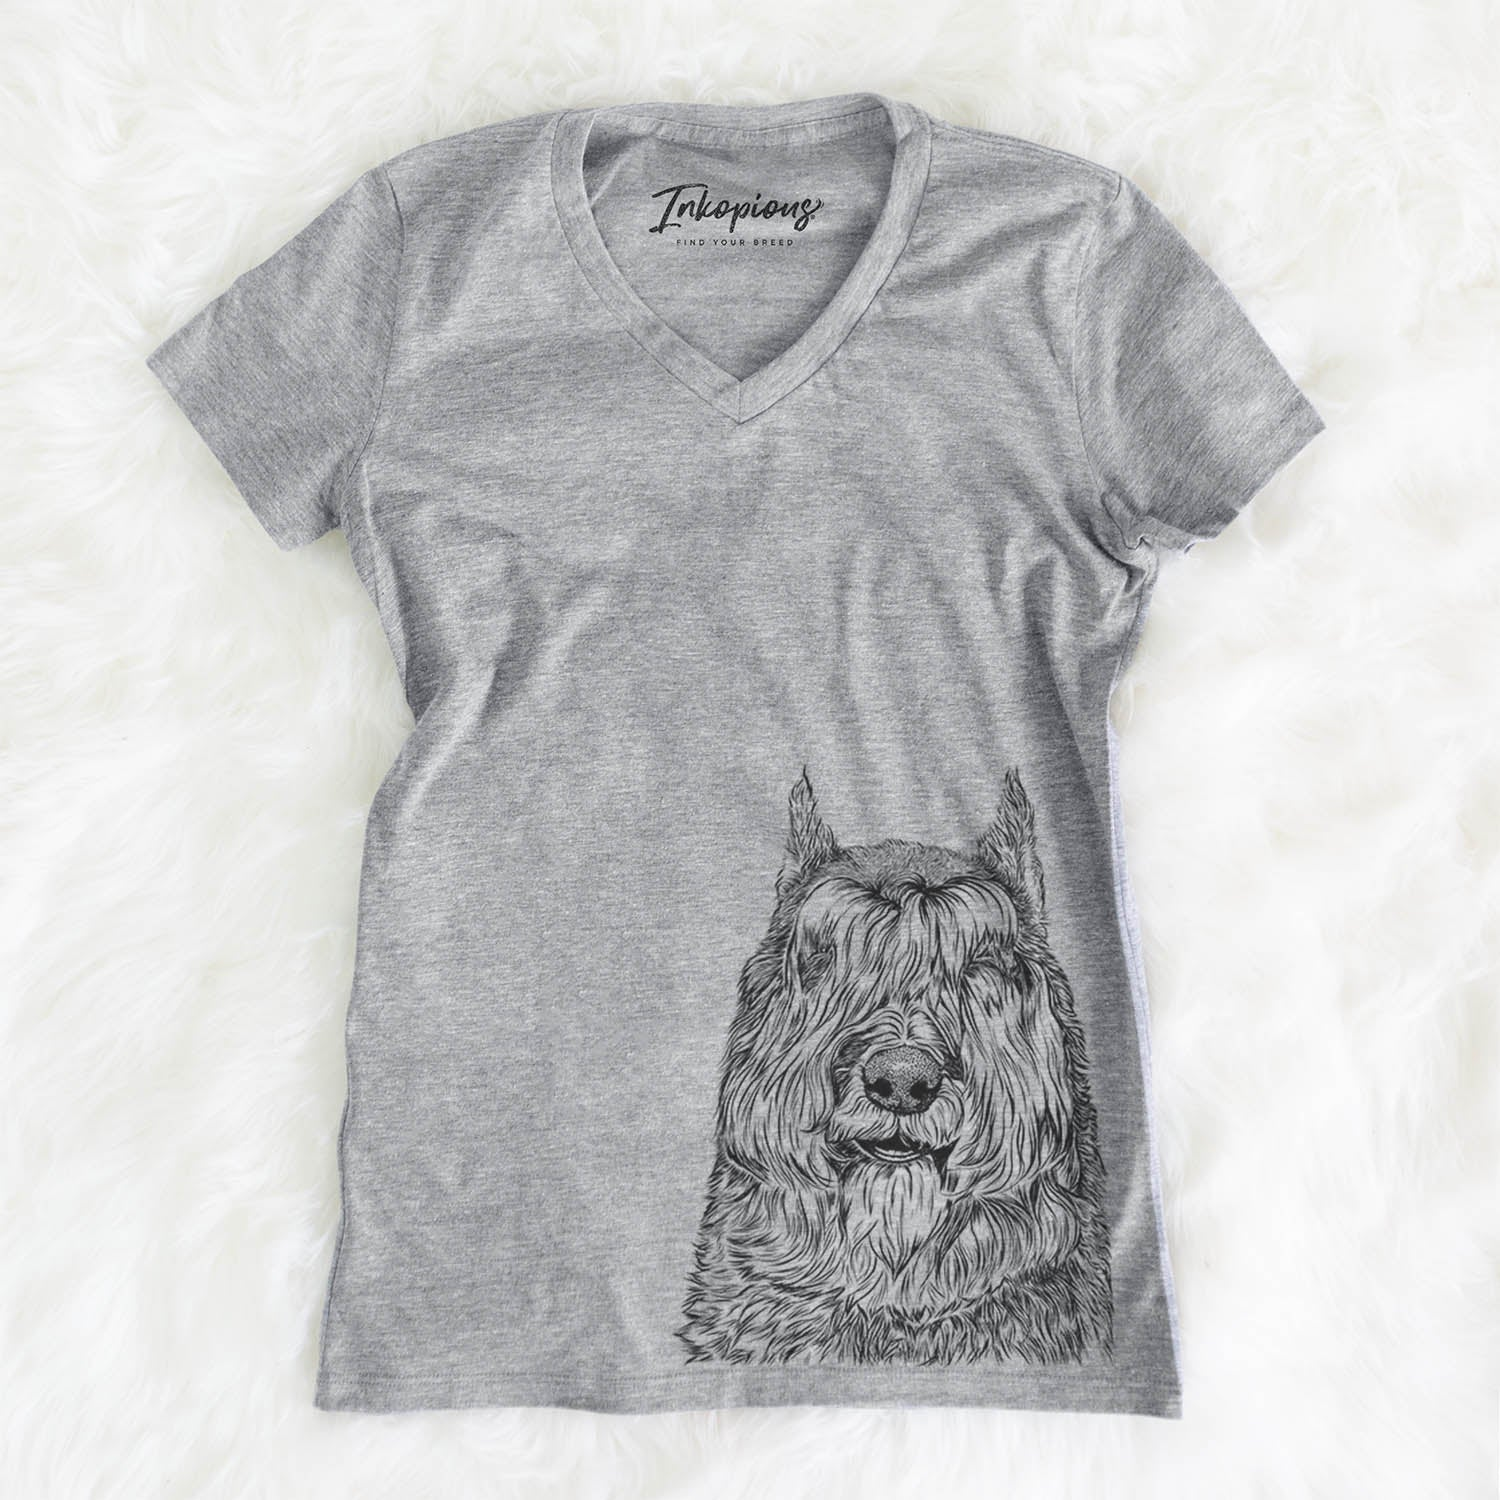 Sabre the Bouvier des Flandres - Women's Modern Fit V-neck Shirt